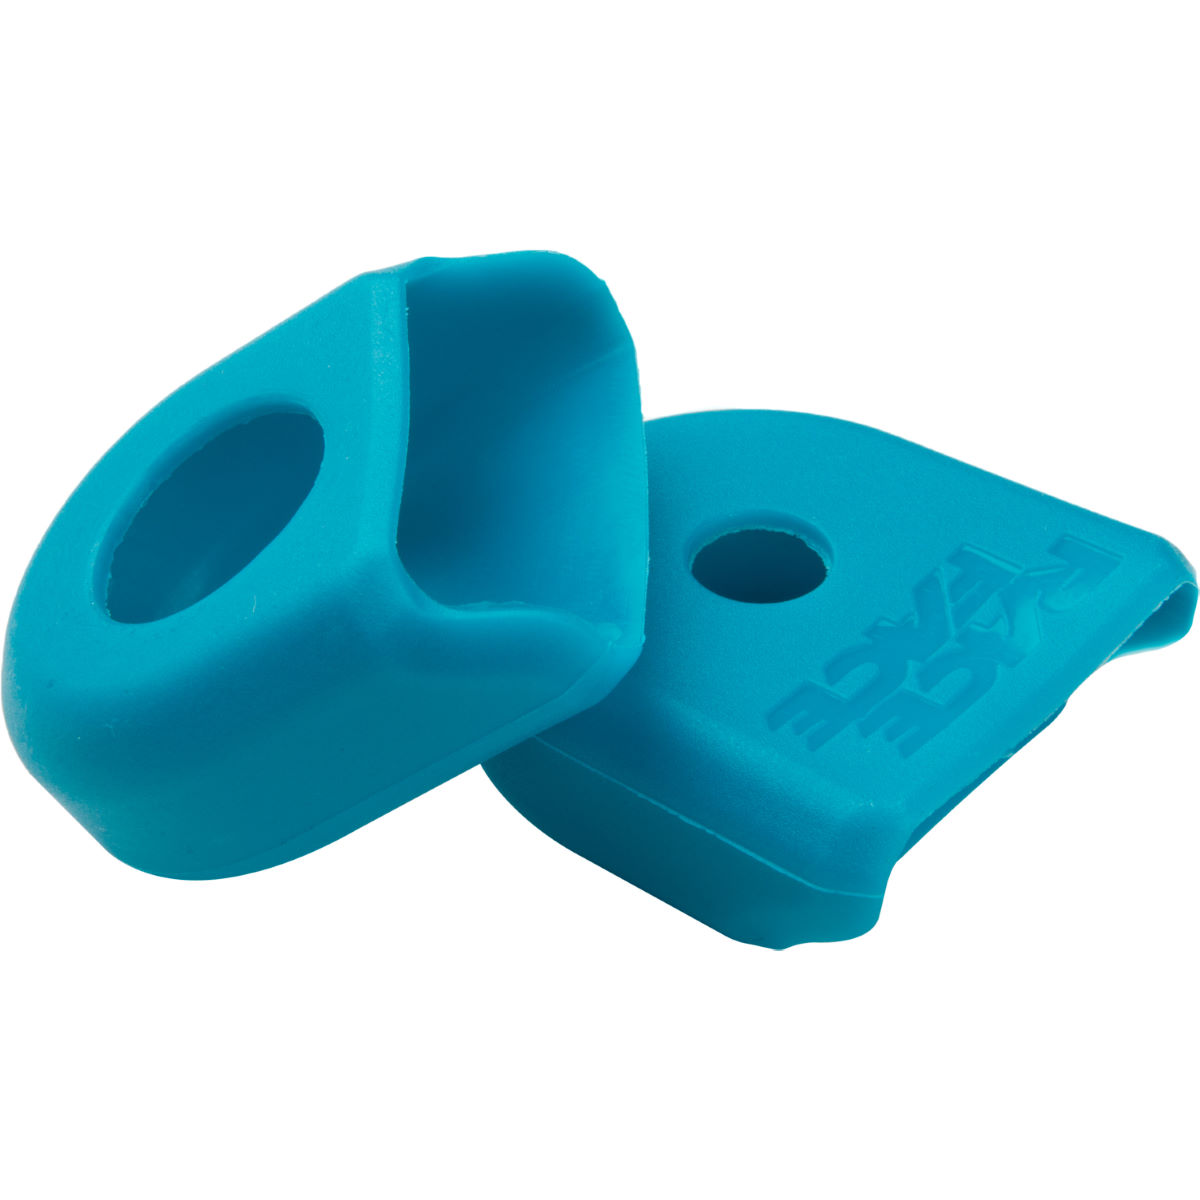 Protections de manivelle Race Face (paire) - carbon fit Turquoise